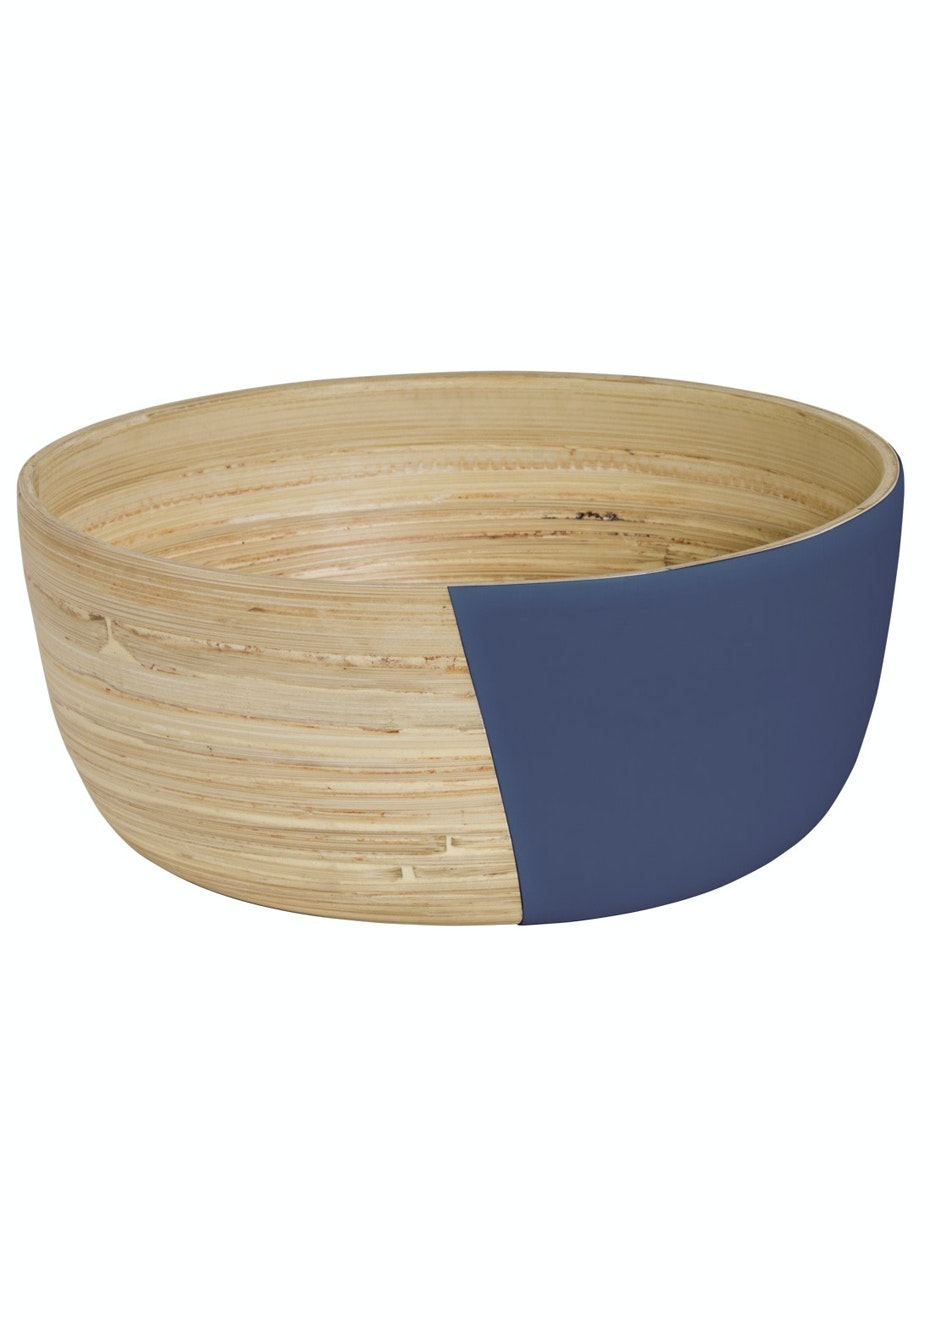 Jason - Lacquered Wooden Bowl Large - Ink